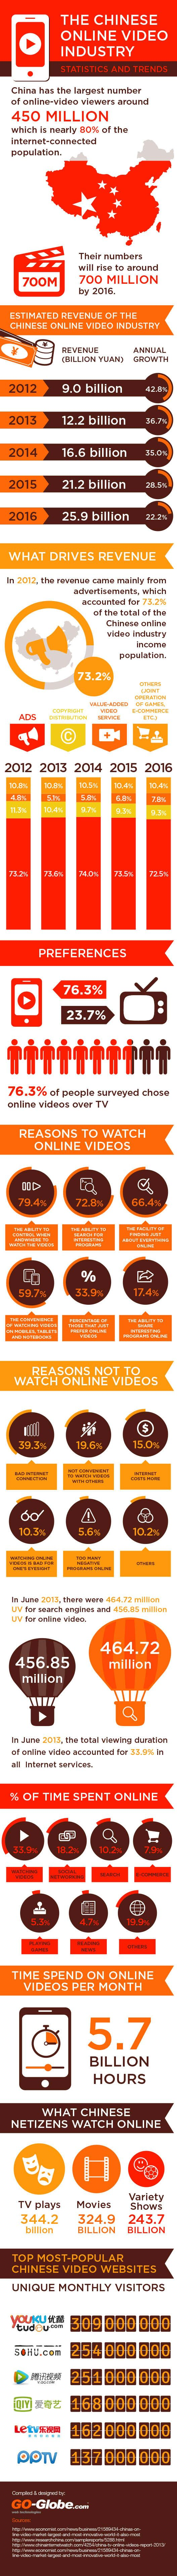 China's 450 million online video viewers watch 5.7 billion hours of vids every month (INFOGRAPHIC)